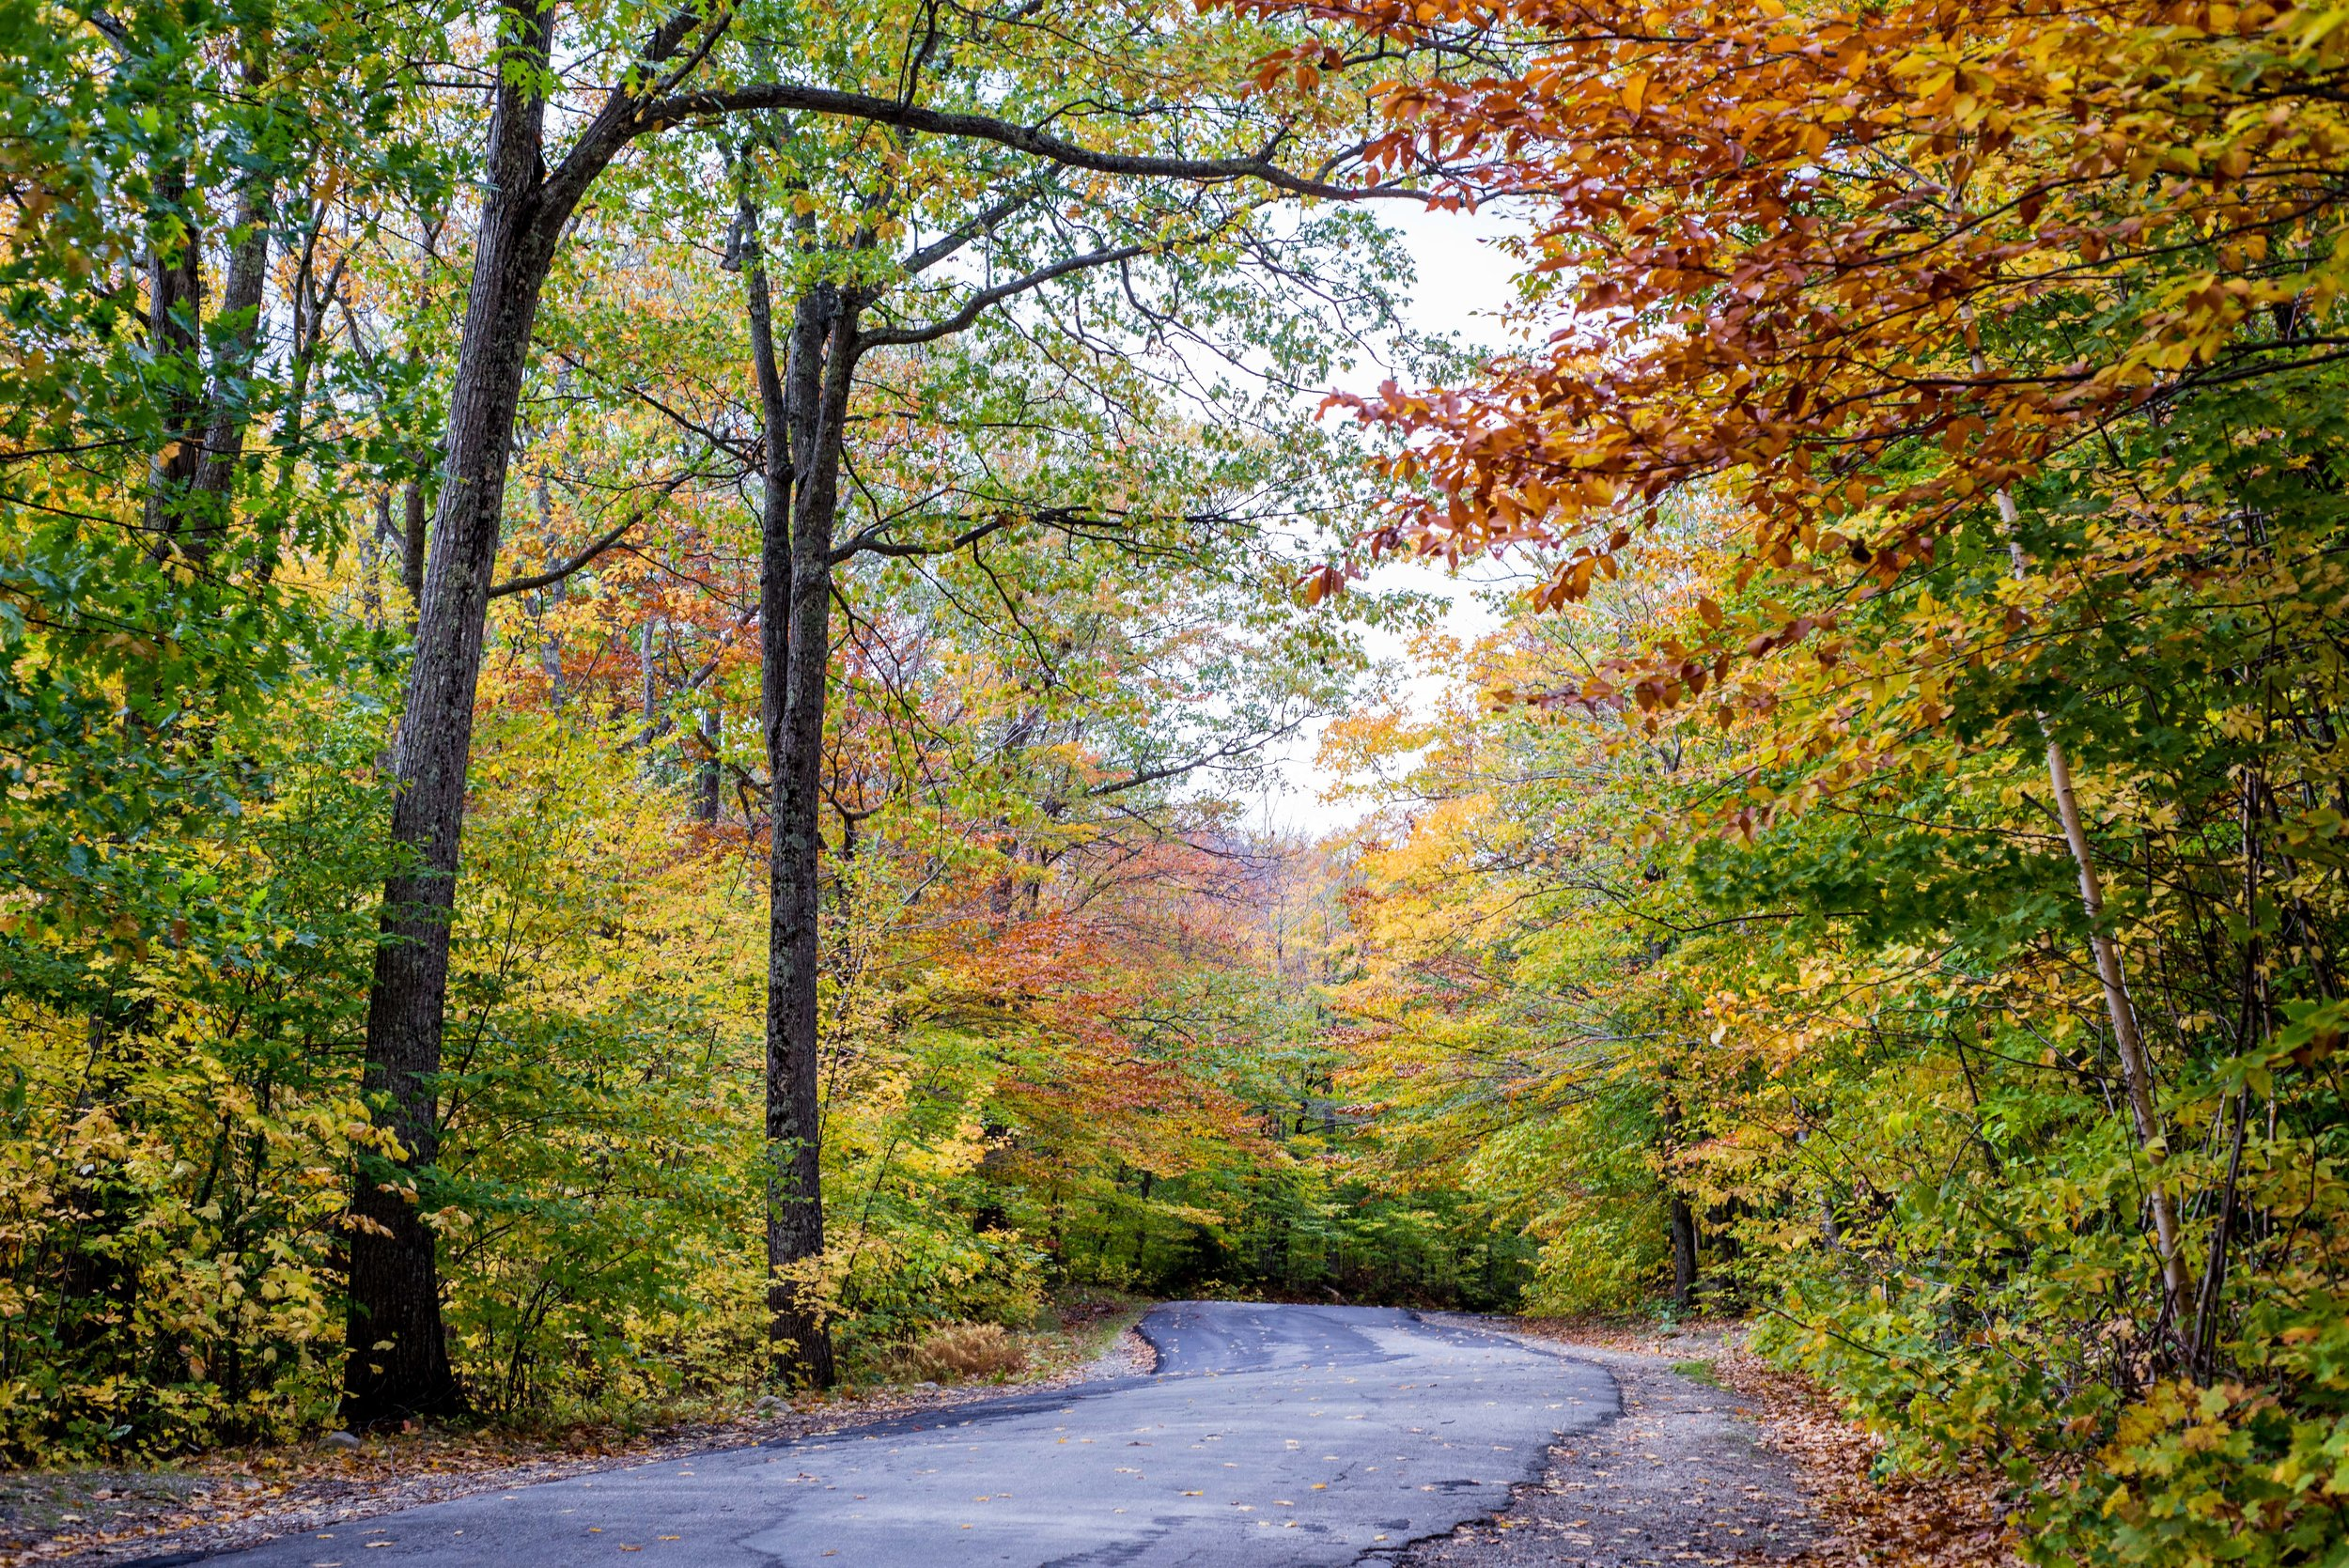 Autumn leaves at Arethusa Falls Trailhead in October by Caitlyn Lunsford Photography